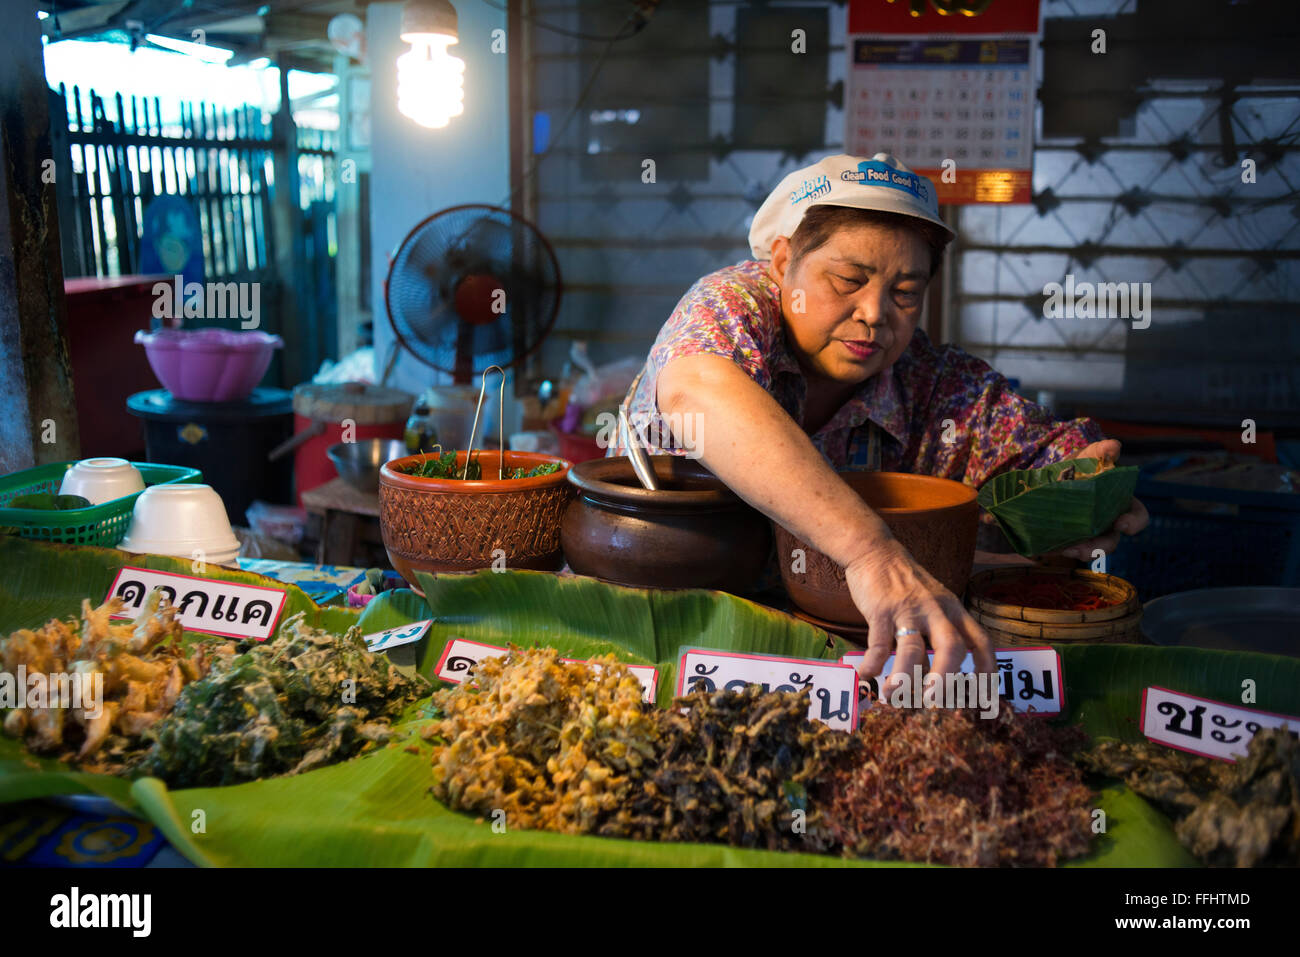 Woman seller. Food stall. Fish, vegetables, fast food. Ko Kret (also Koh Kred) is an island in the Chao Phraya River, Stock Photo